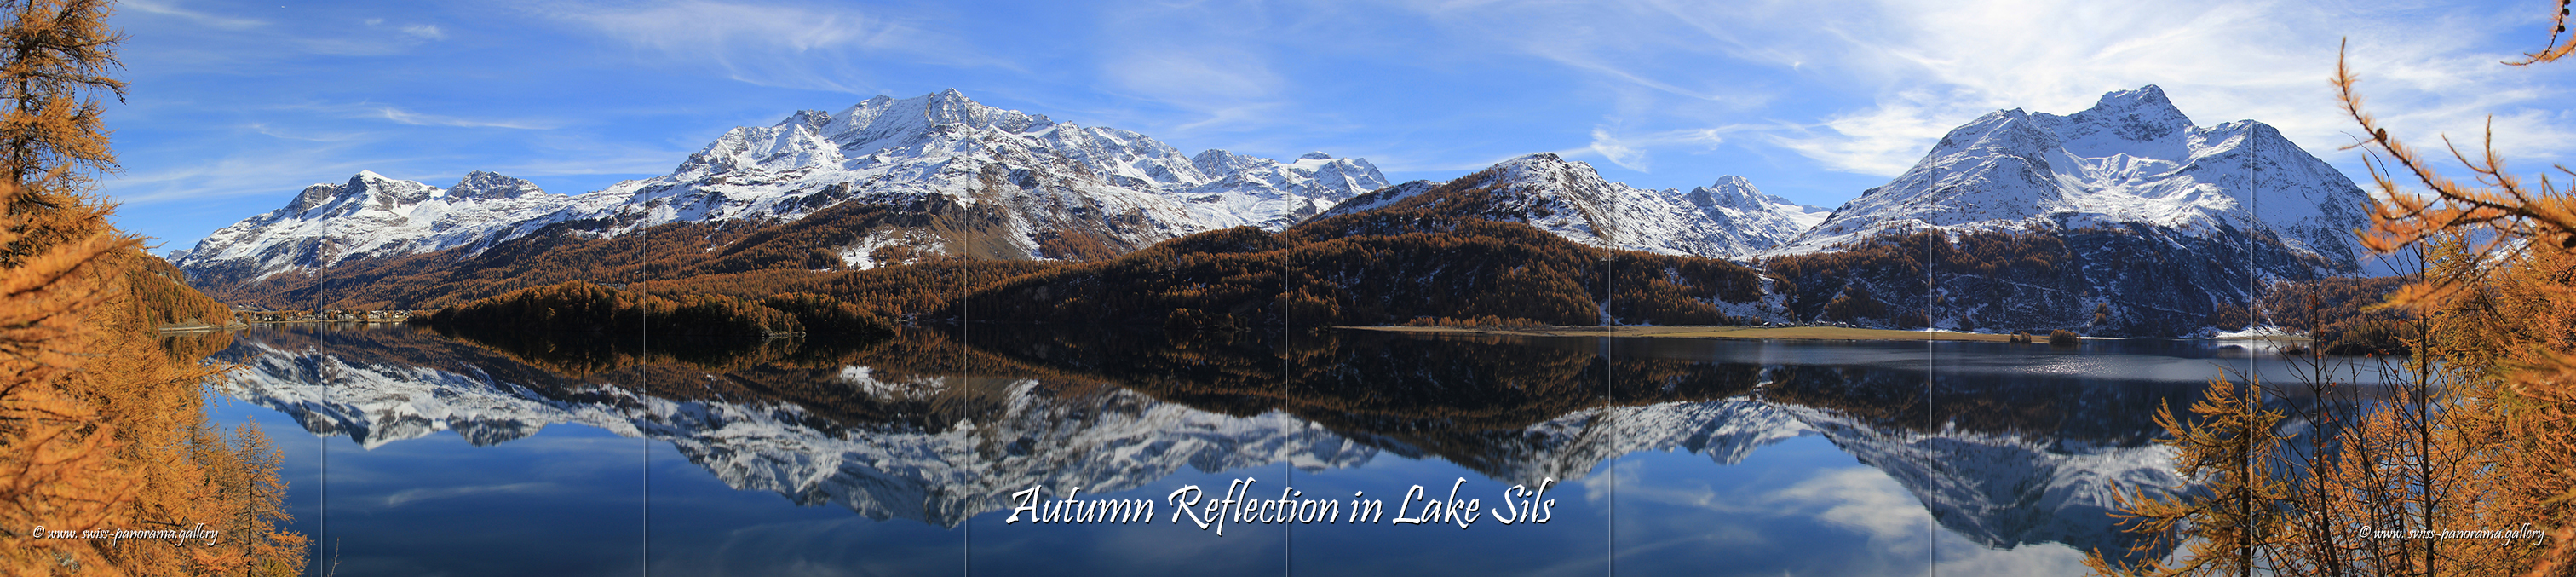 lake Sils reflection swiss panorama